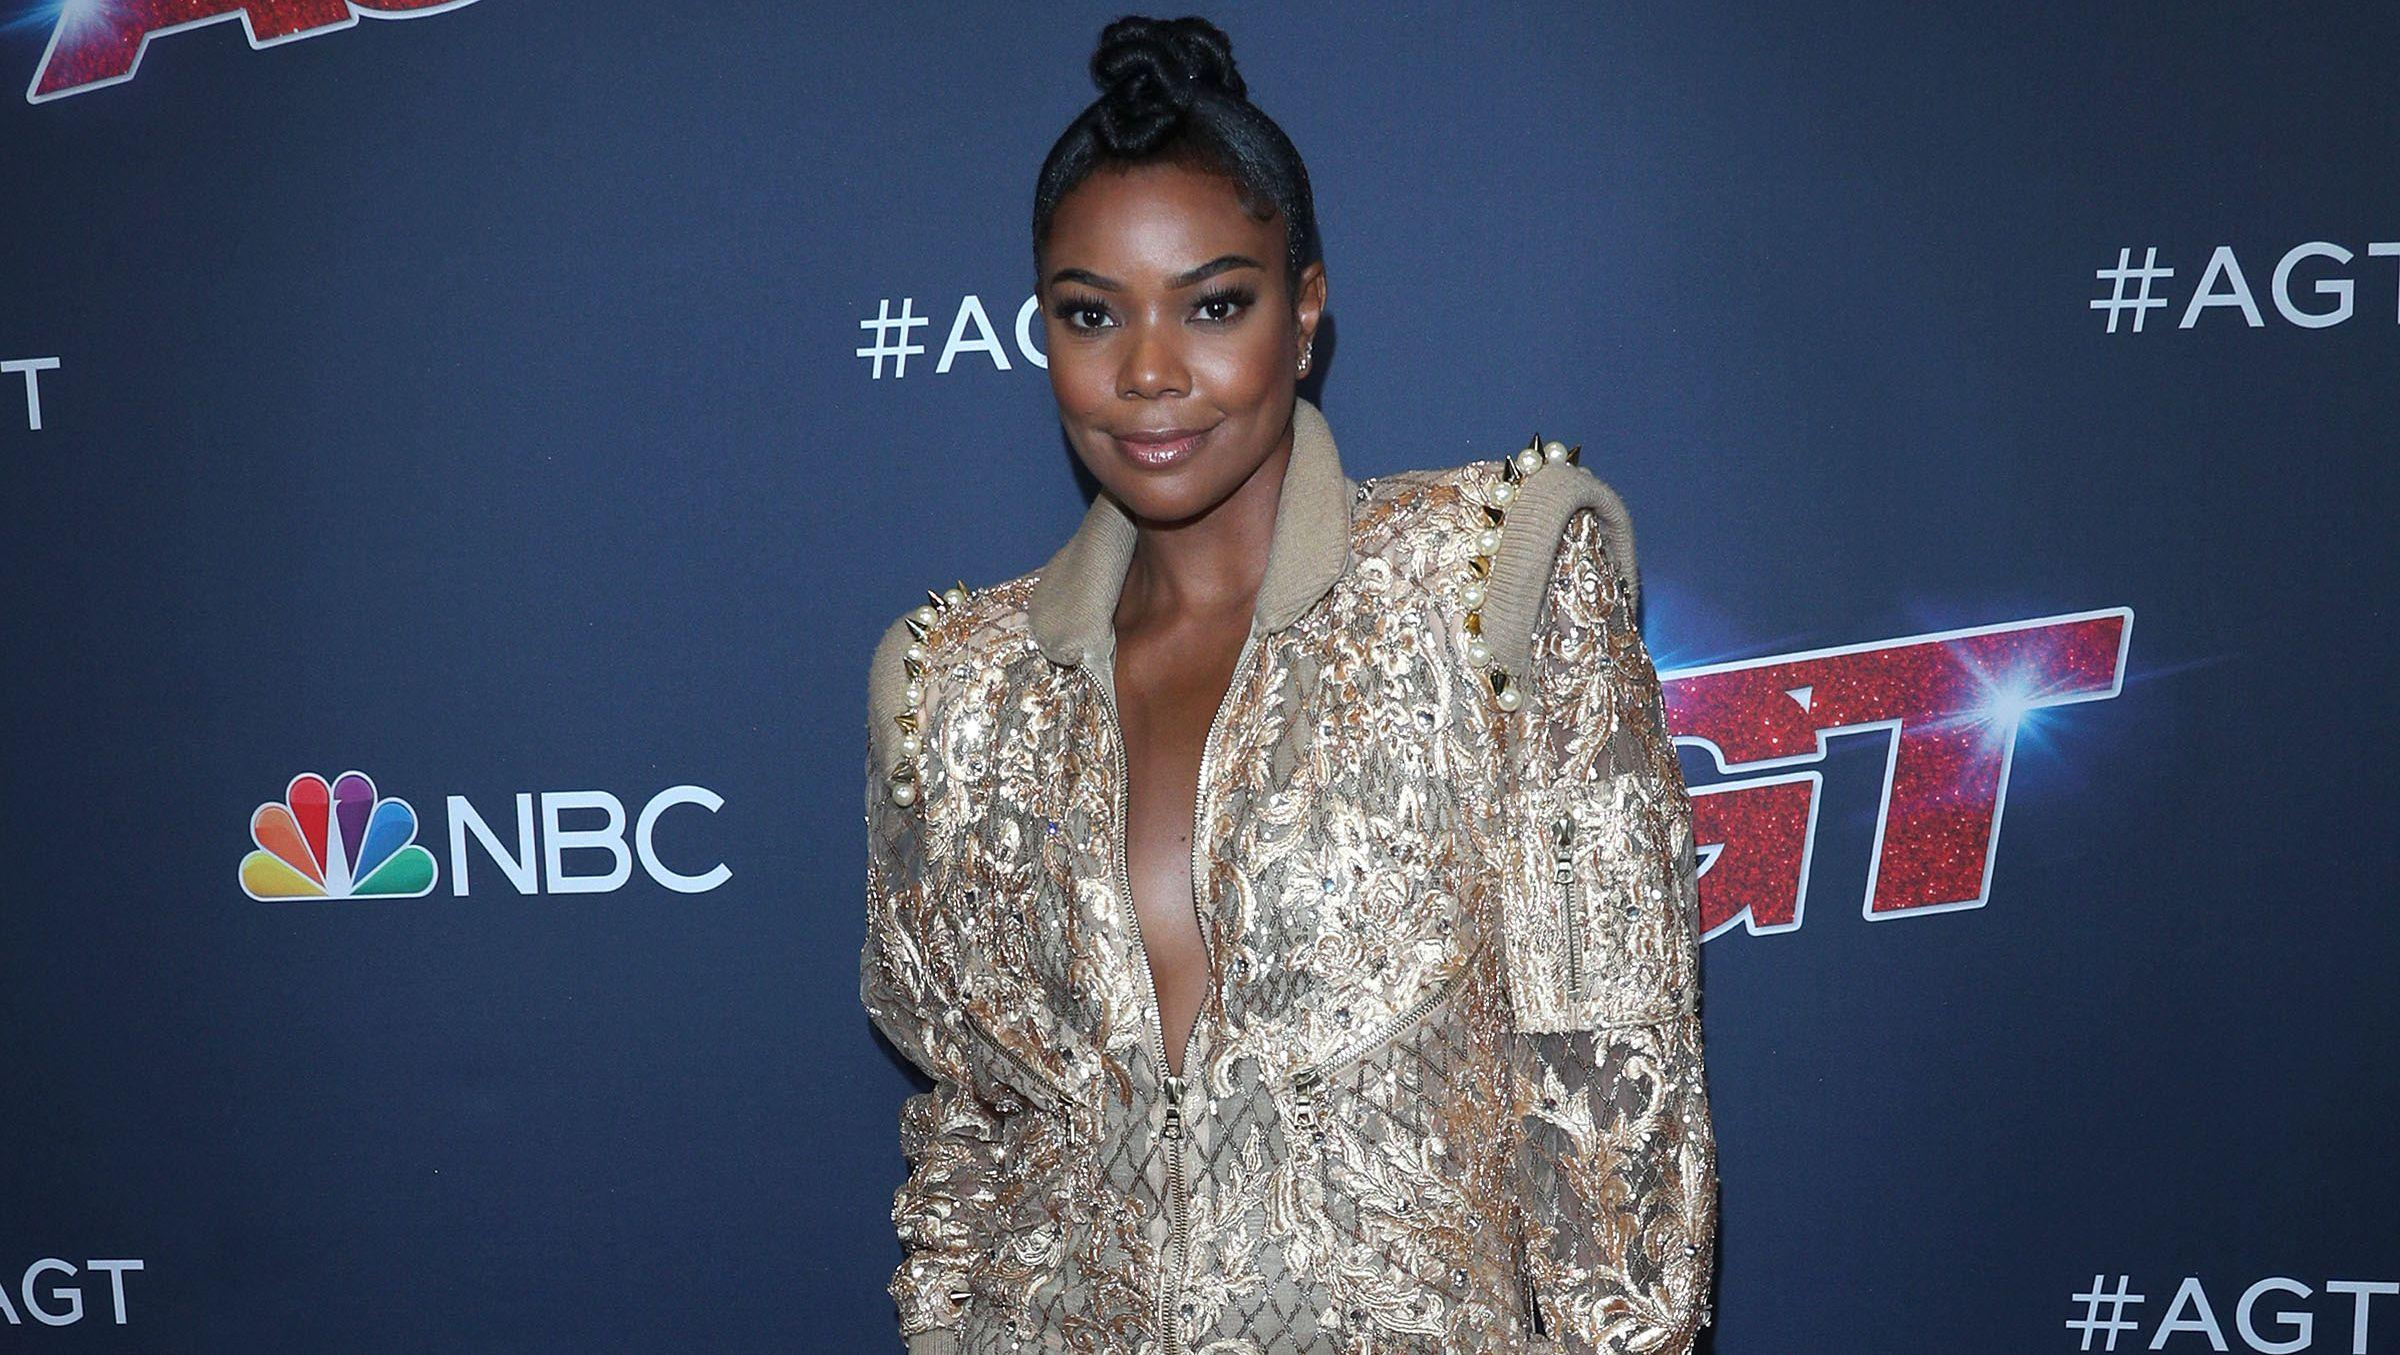 NBC Opens Investigation Into Gabrielle Unions AGT